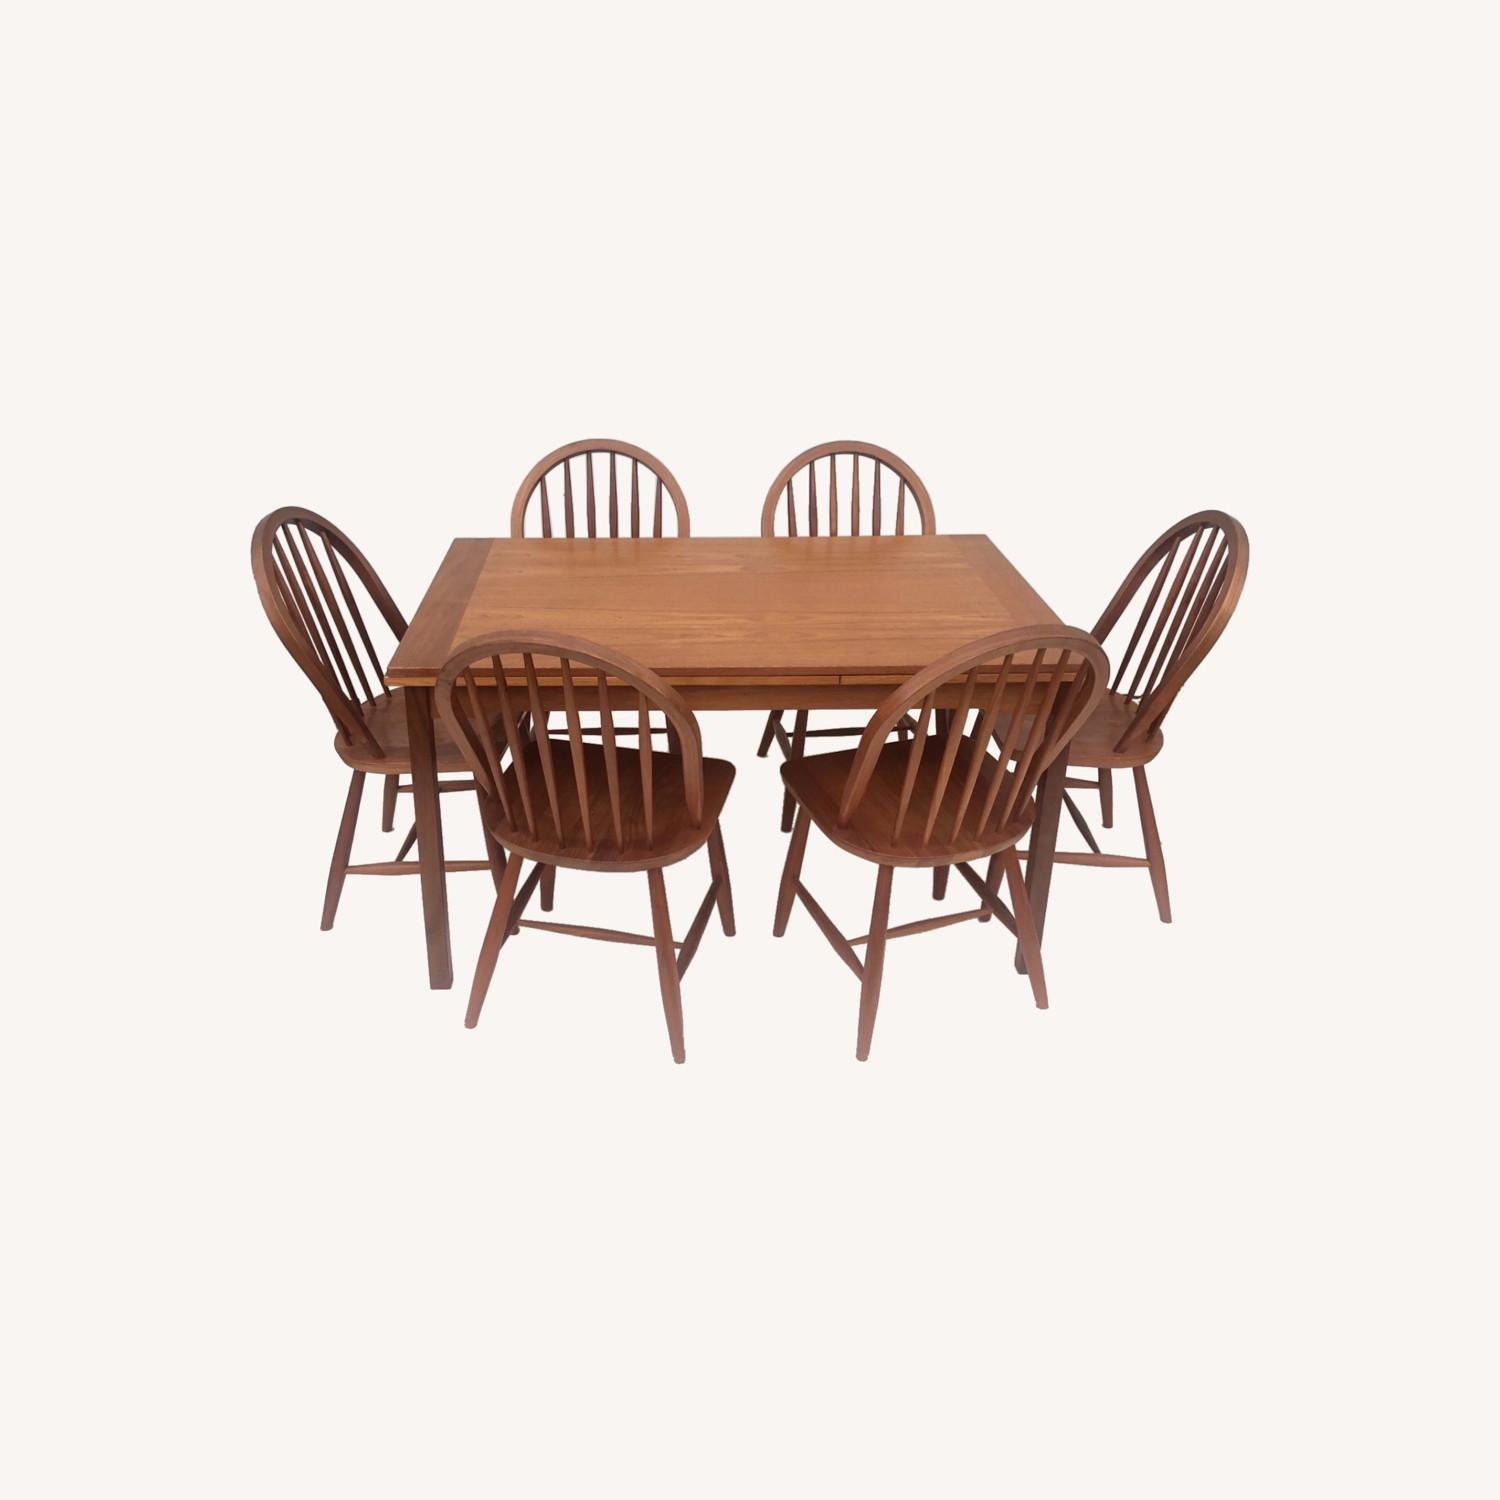 Vintage Modern Dining Set w/ Six Chairs - image-0